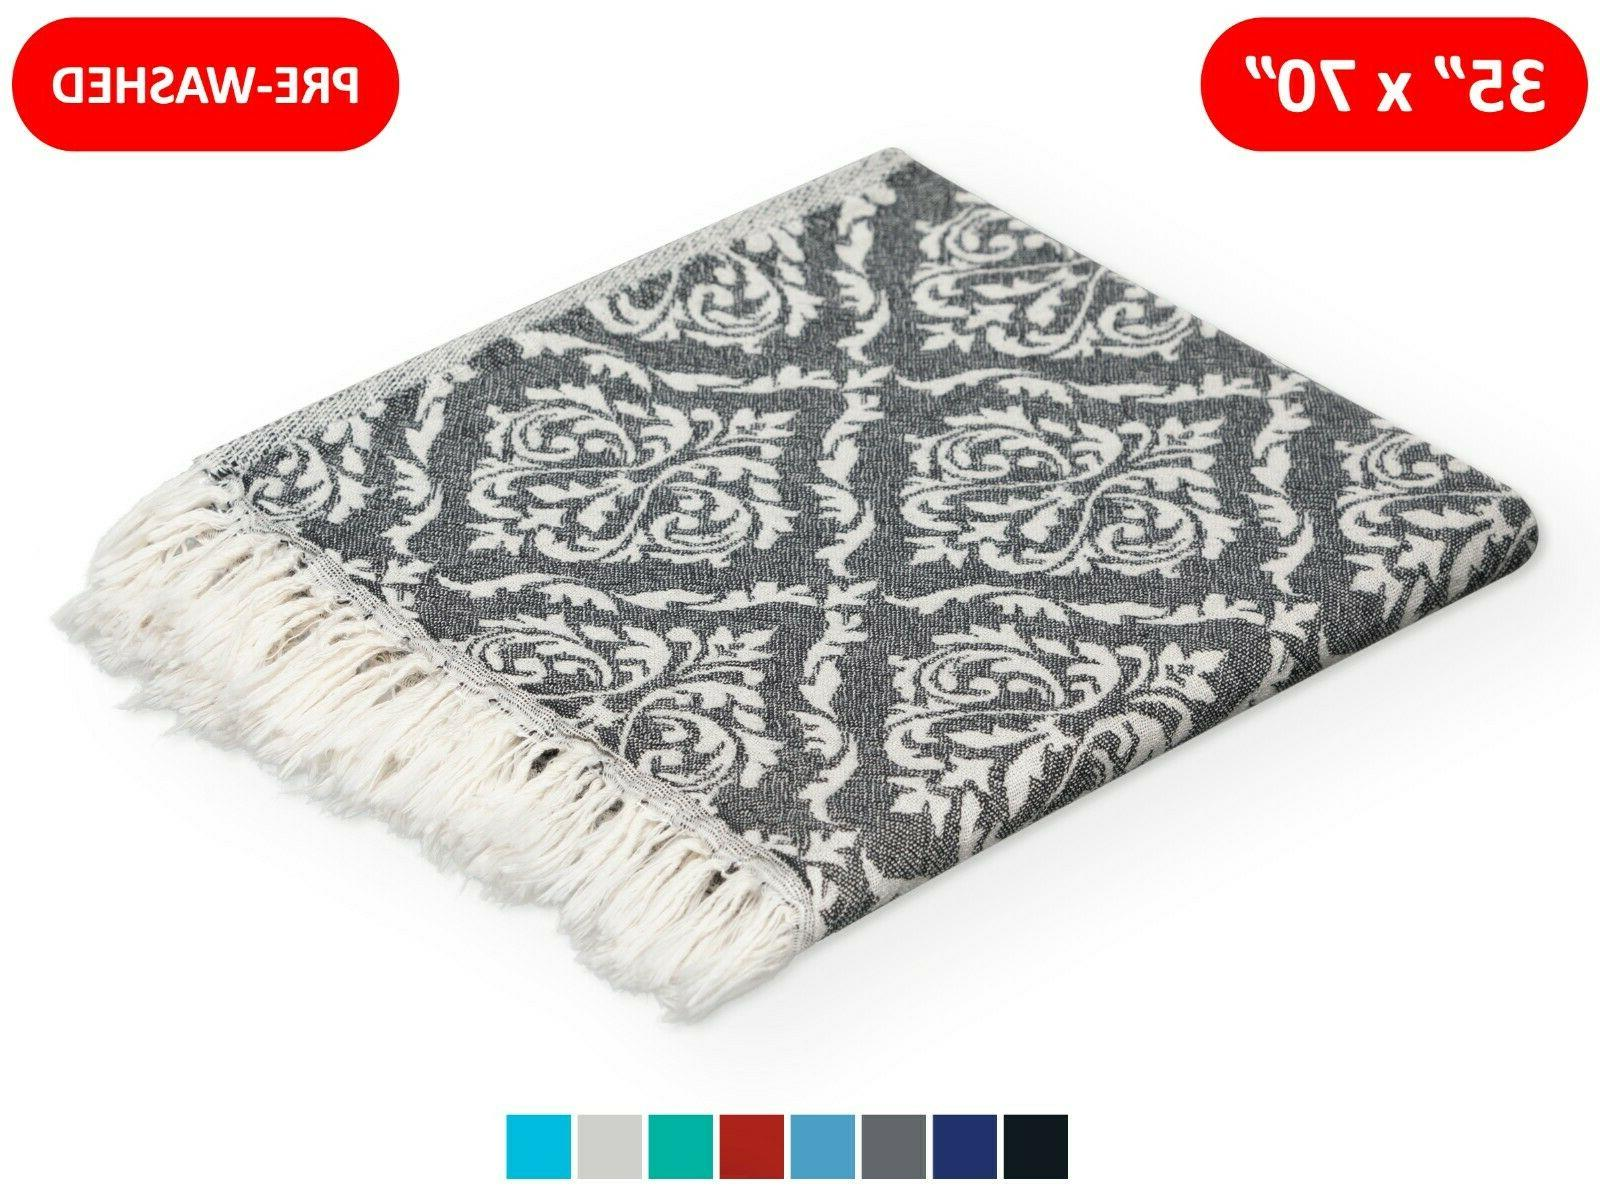 sultan sand free turkish beach towel pareo